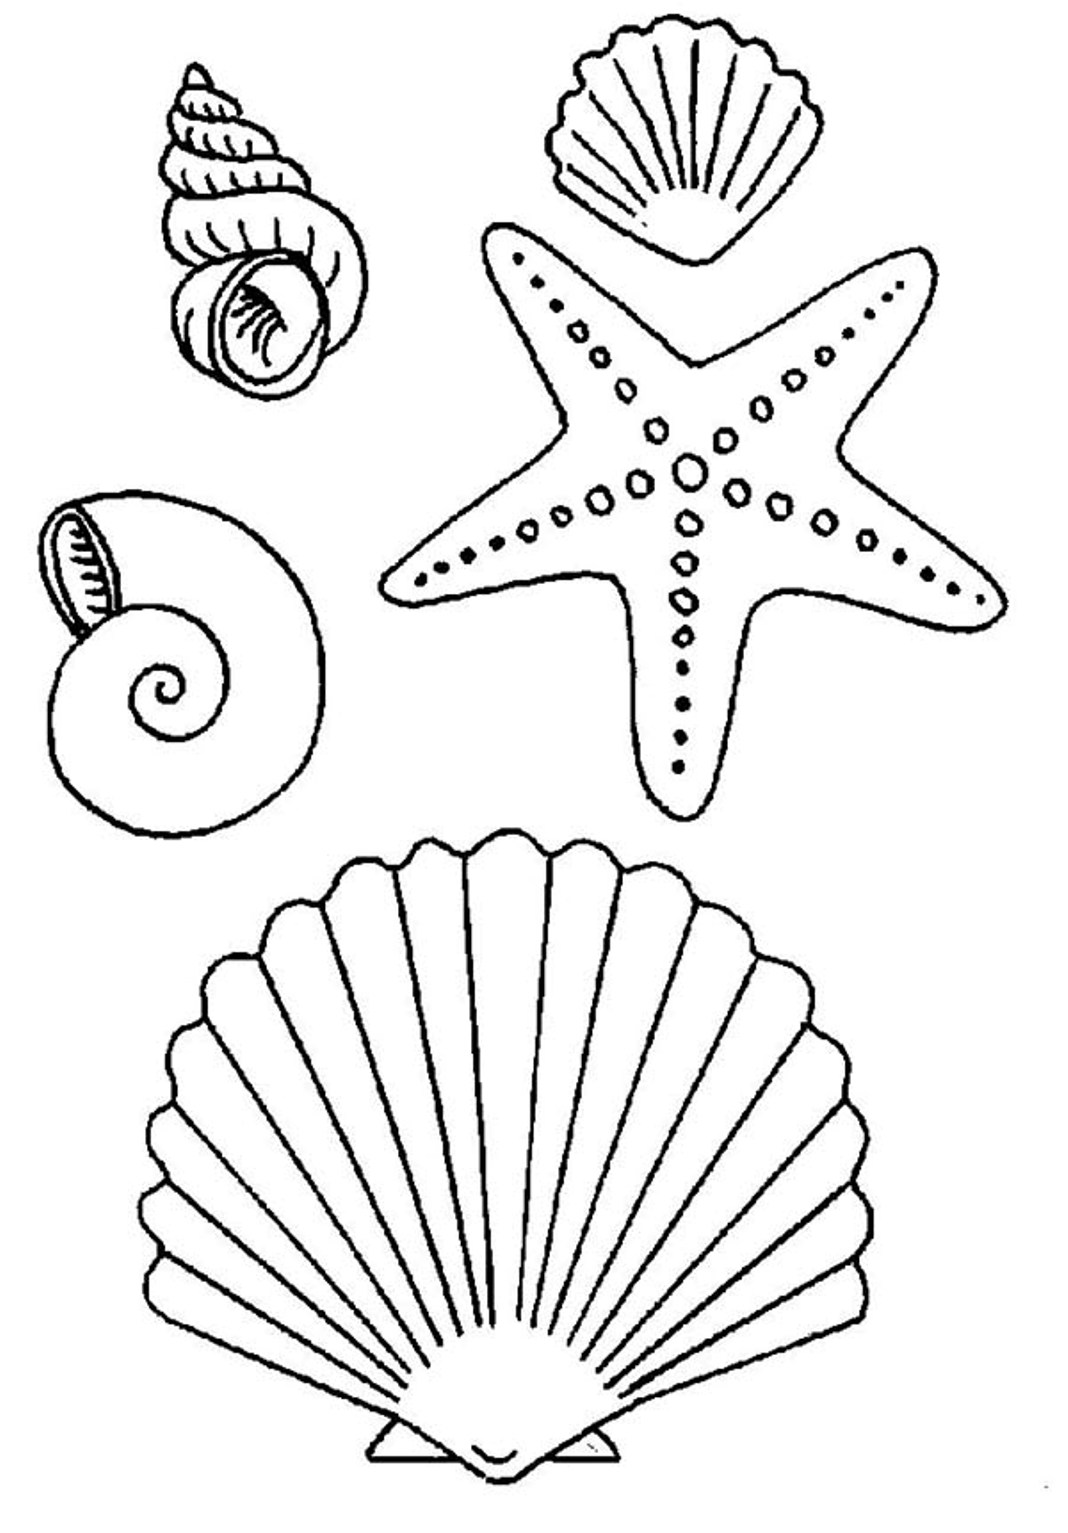 Simple Shell Drawing At Getdrawings